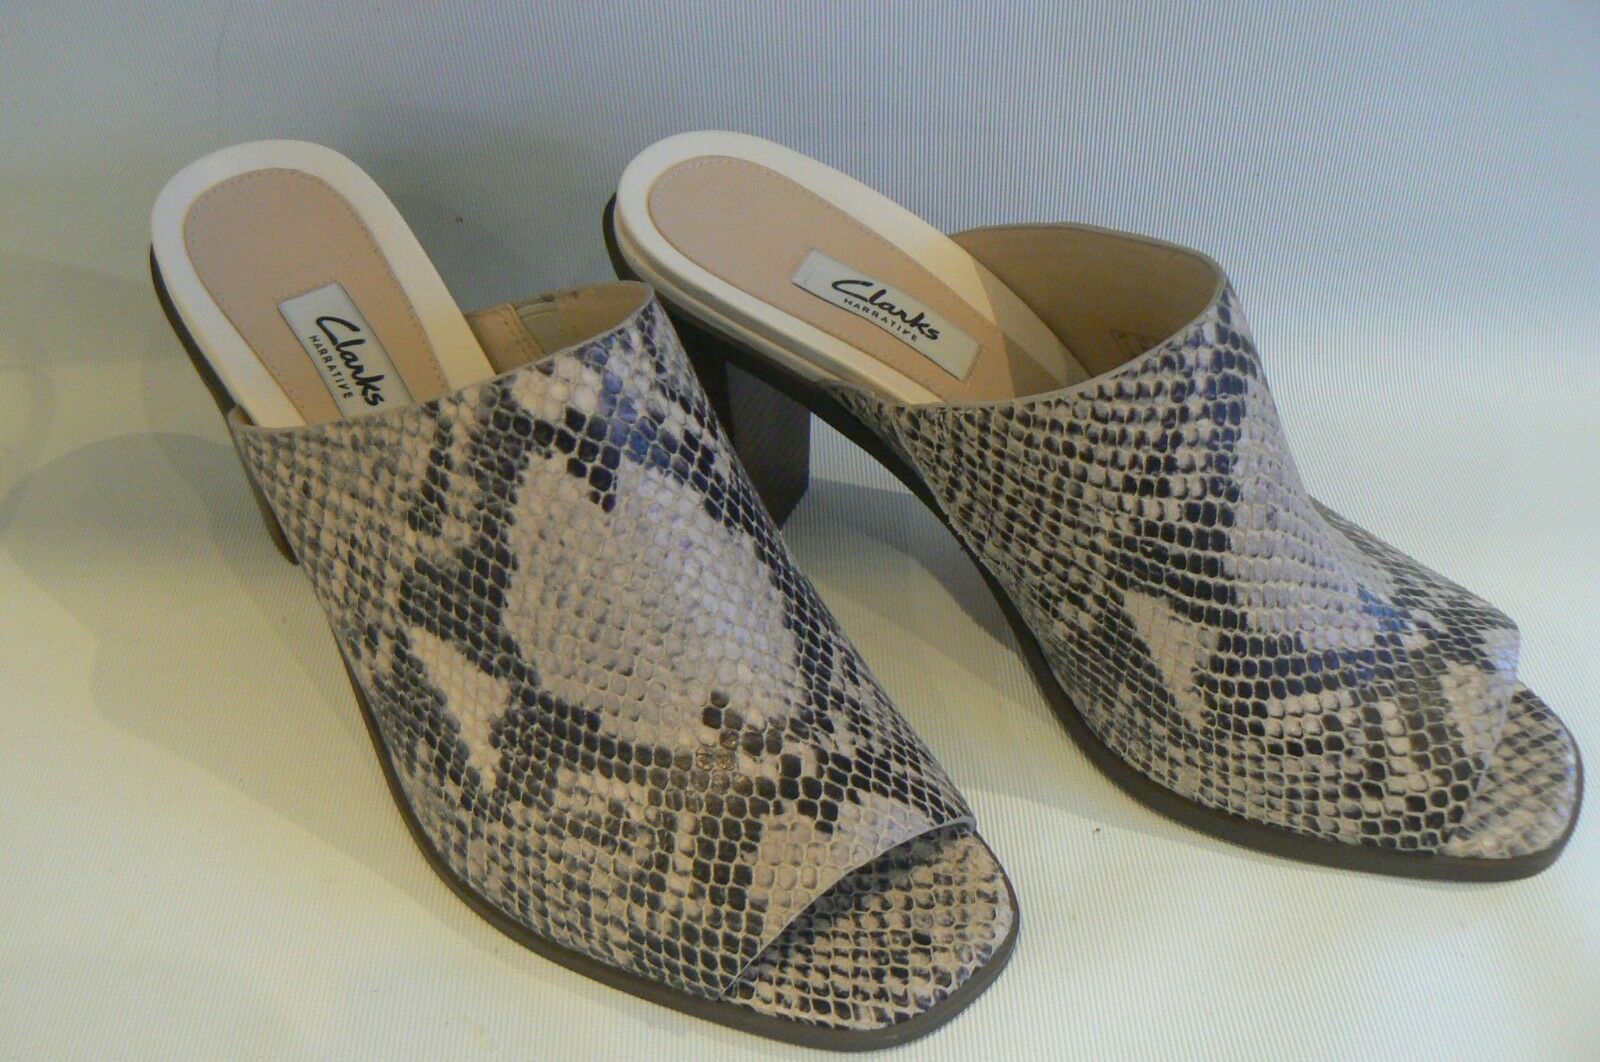 CLARKS Image Gallery Snake Print Slip On Mules Sandals Taille 7 NEW